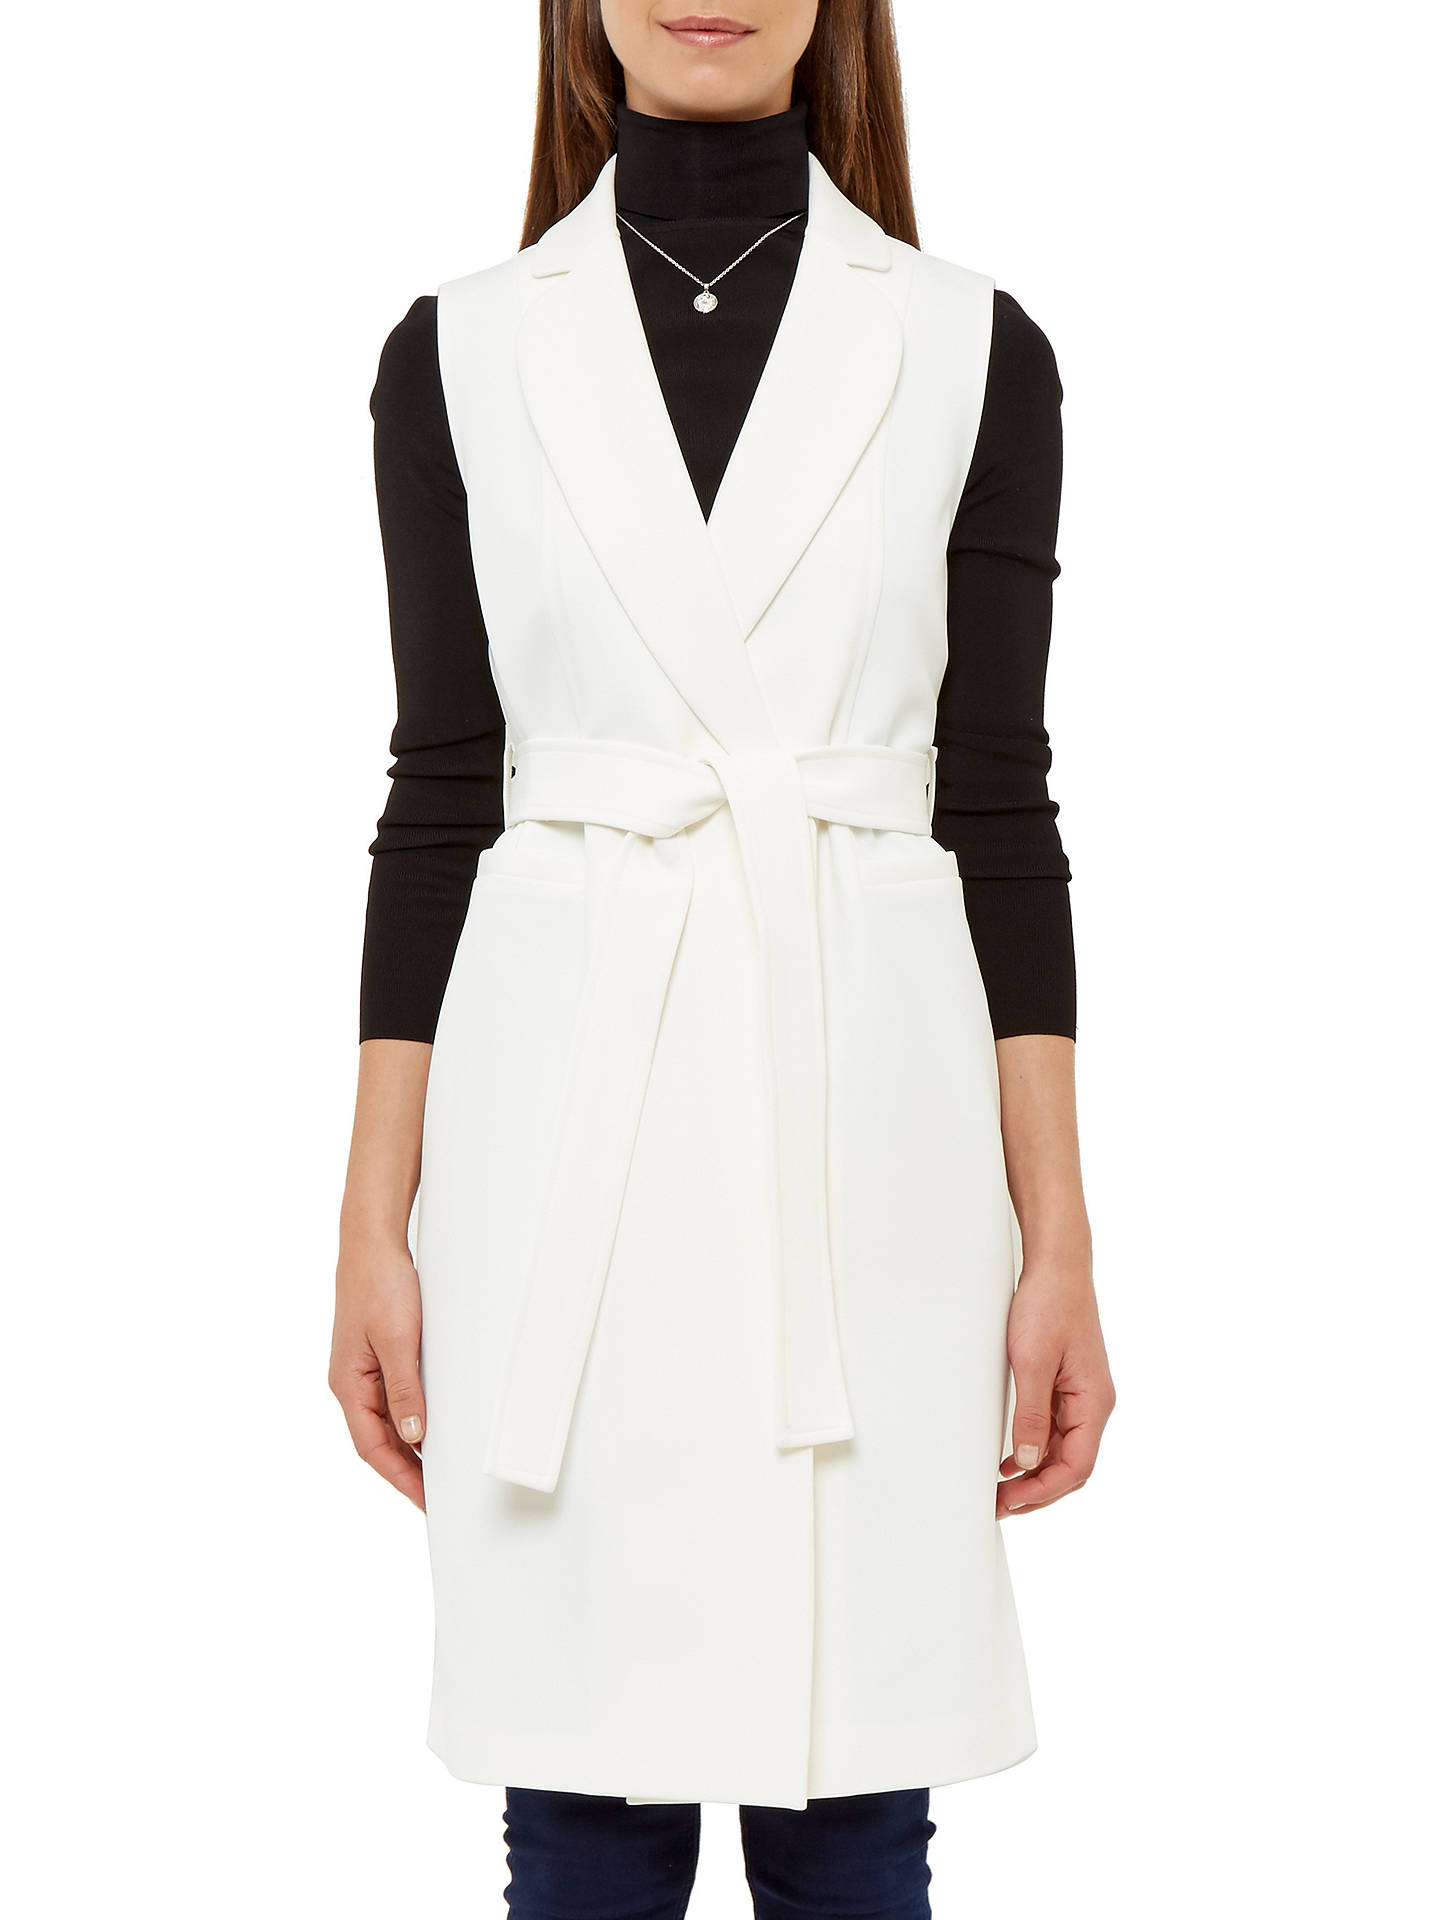 25b80d67b4732 ... Buy Ted Baker Longline Sleeveless Jacket